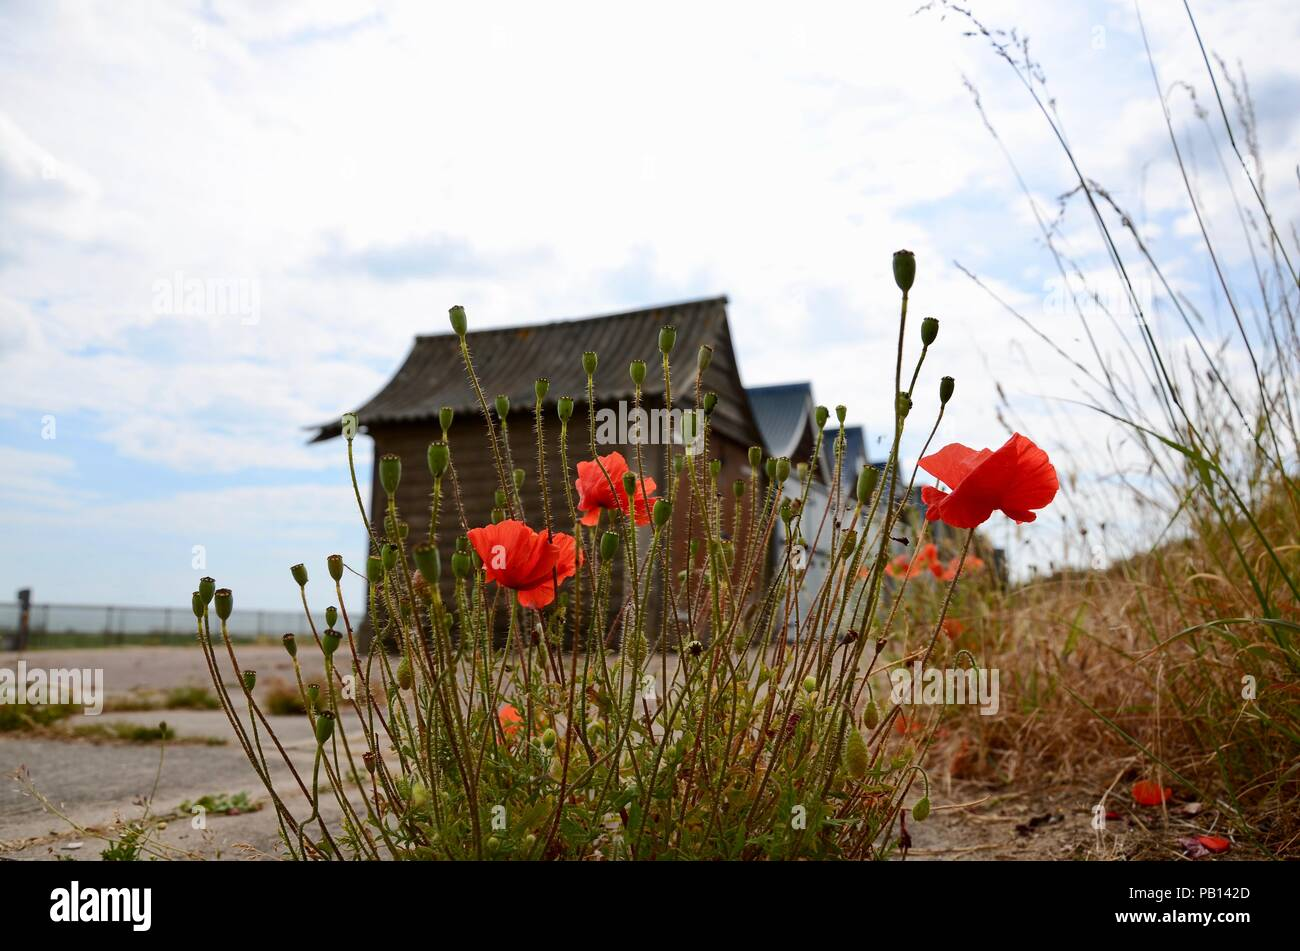 Common wild red poppies in sand dune with beach chalets in backgound, Lincolnshire, England, UK. Stock Photo